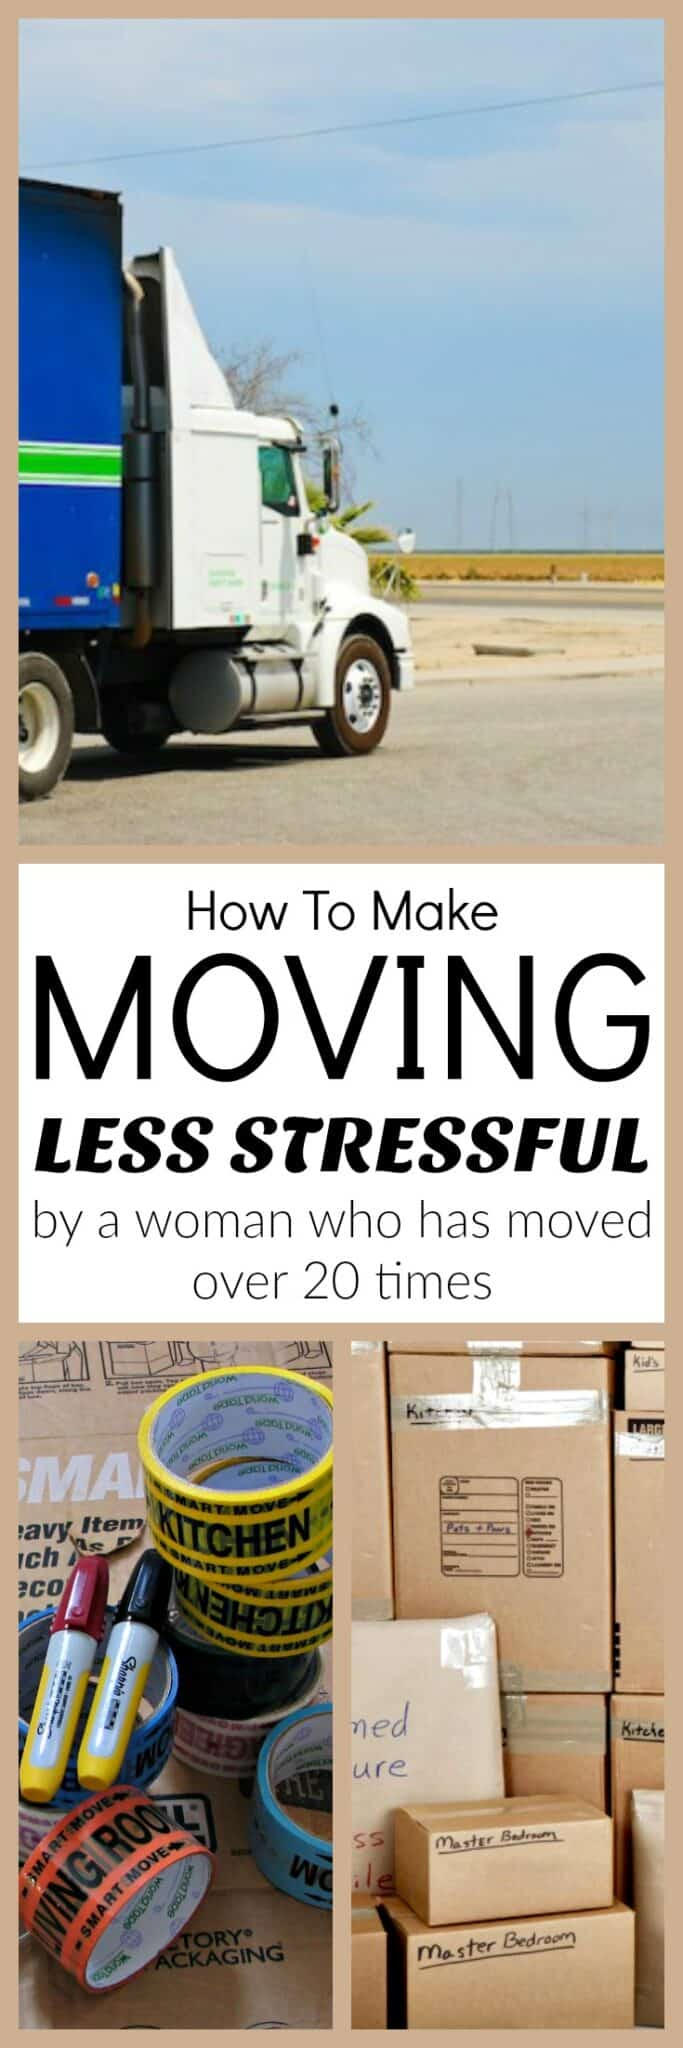 How To Make Moving Less Stressful - Great tips to an organized move from a woman who has moved over 20 times